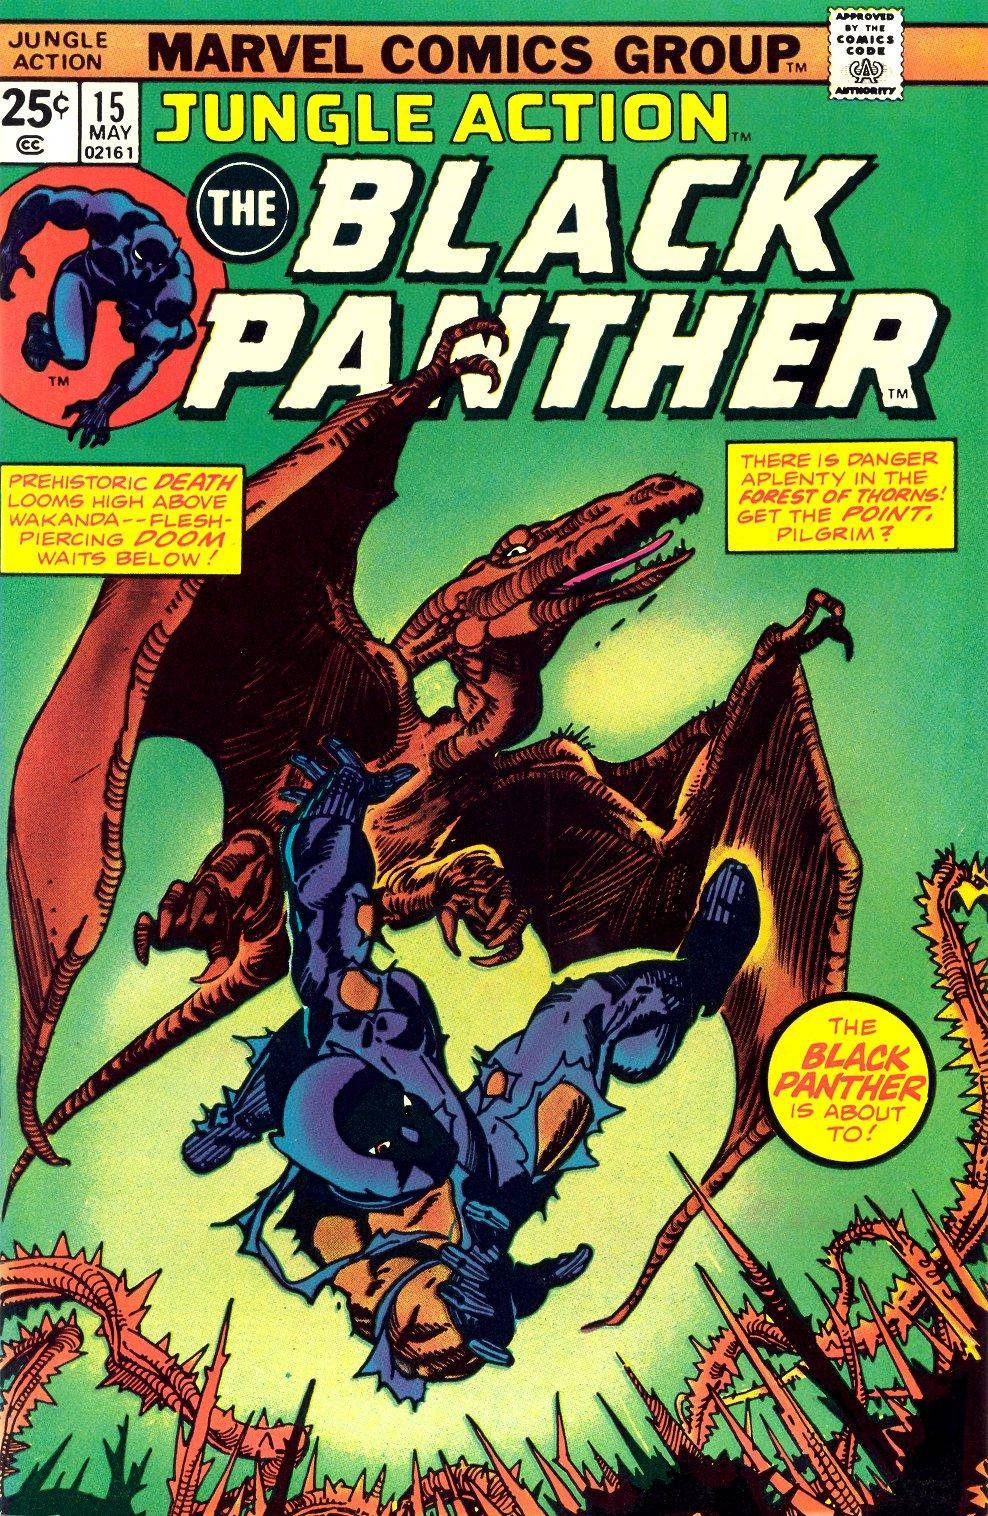 Jungle Action v2 015 featuring Black Panther